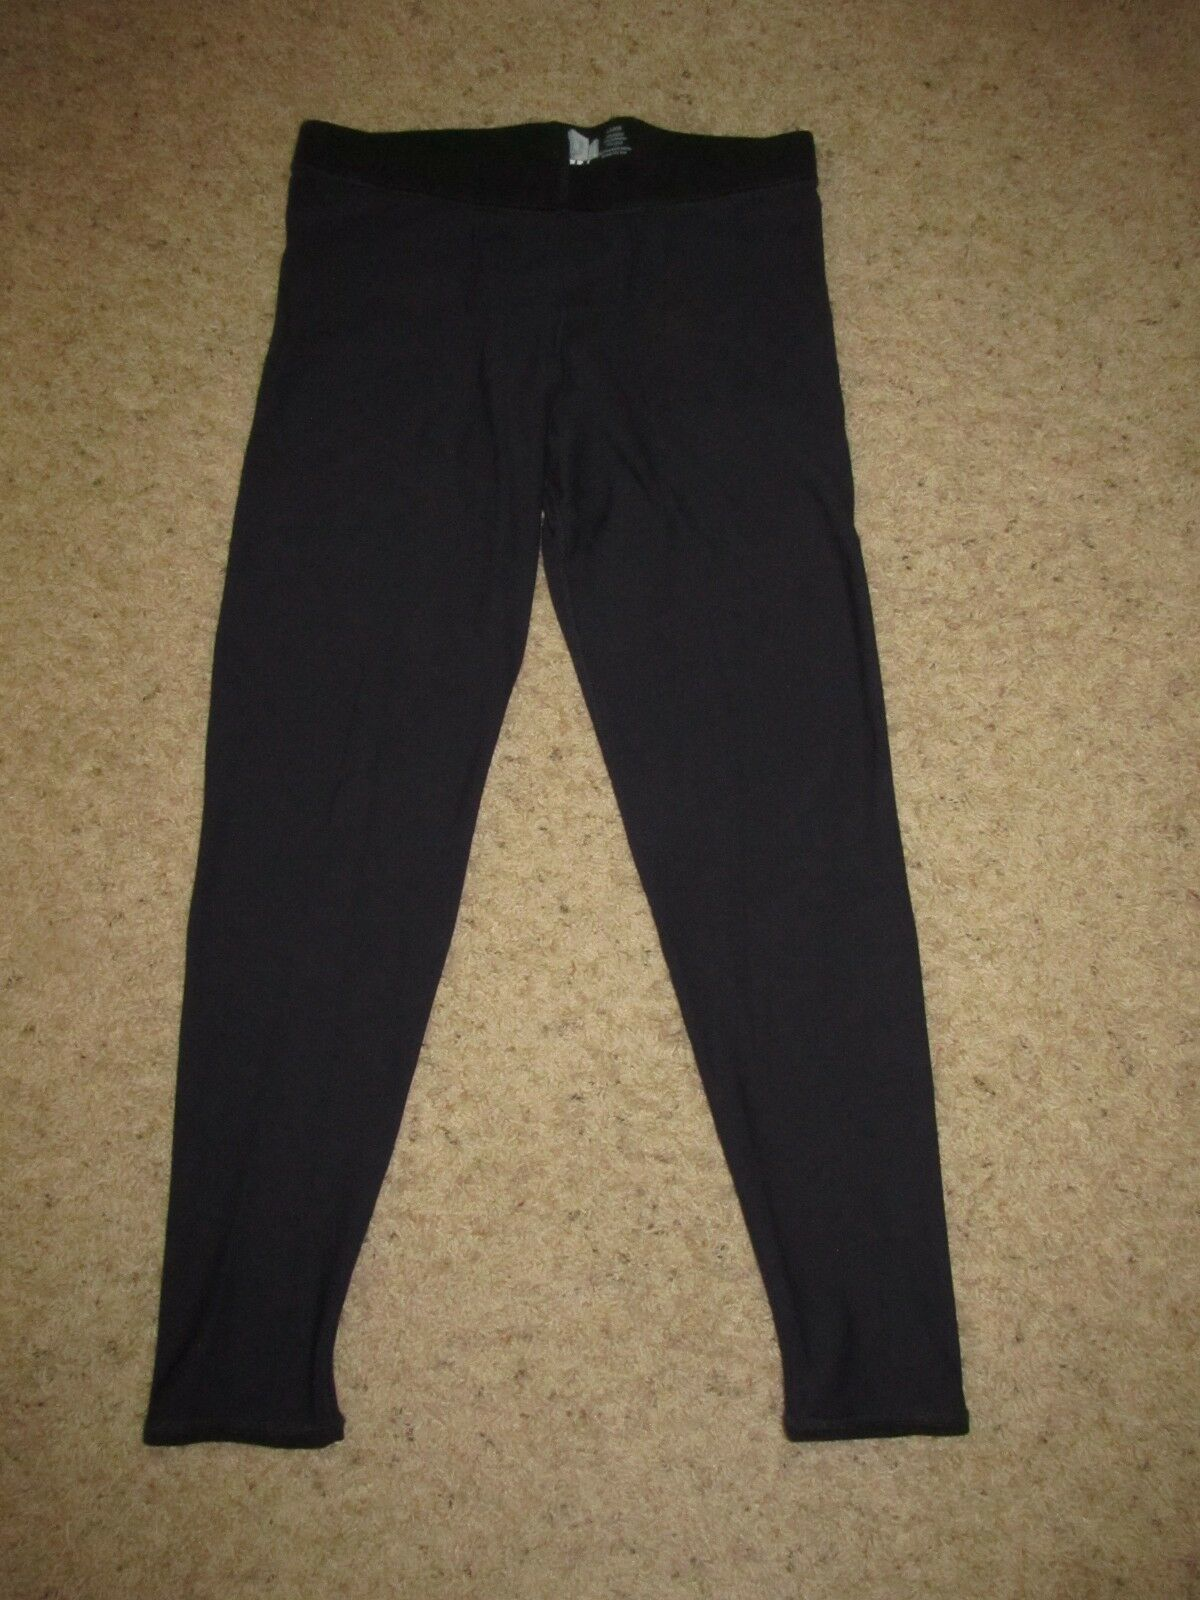 GH Unders Tights Base Layer Long Underwear Pants Compression  Herren L